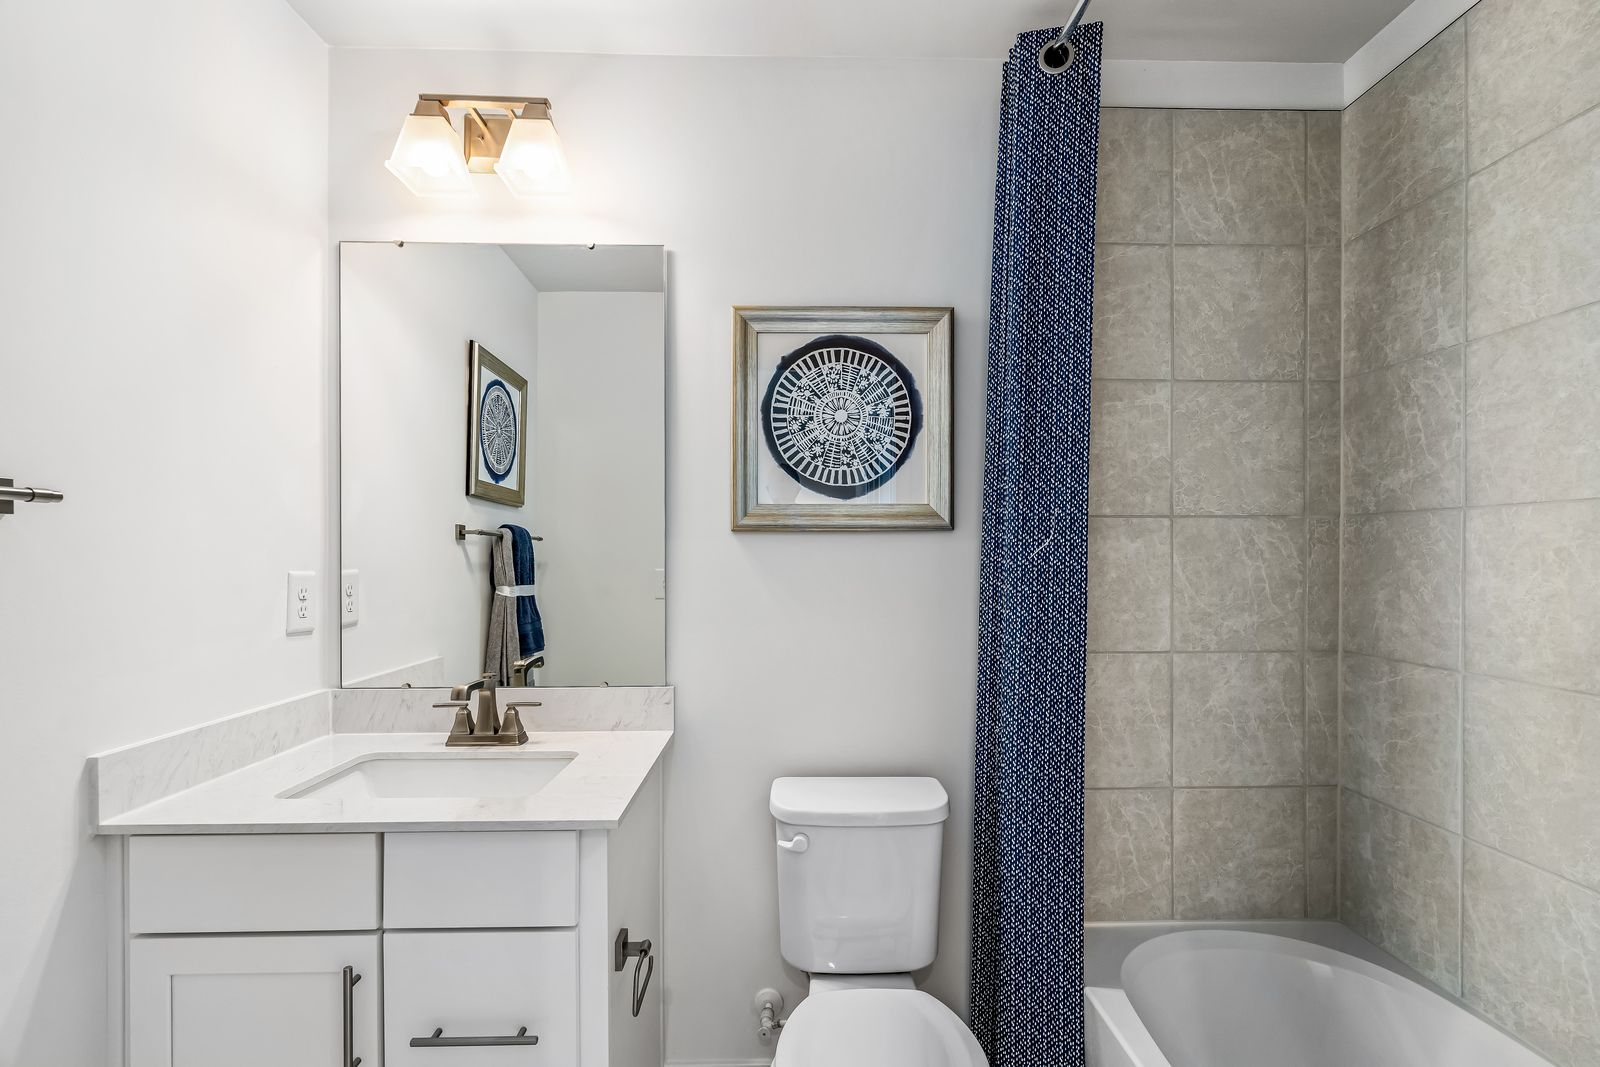 Bathroom featured in the Clarendon 4-Story Rear Terrace By Ryan Homes in Charlotte, NC